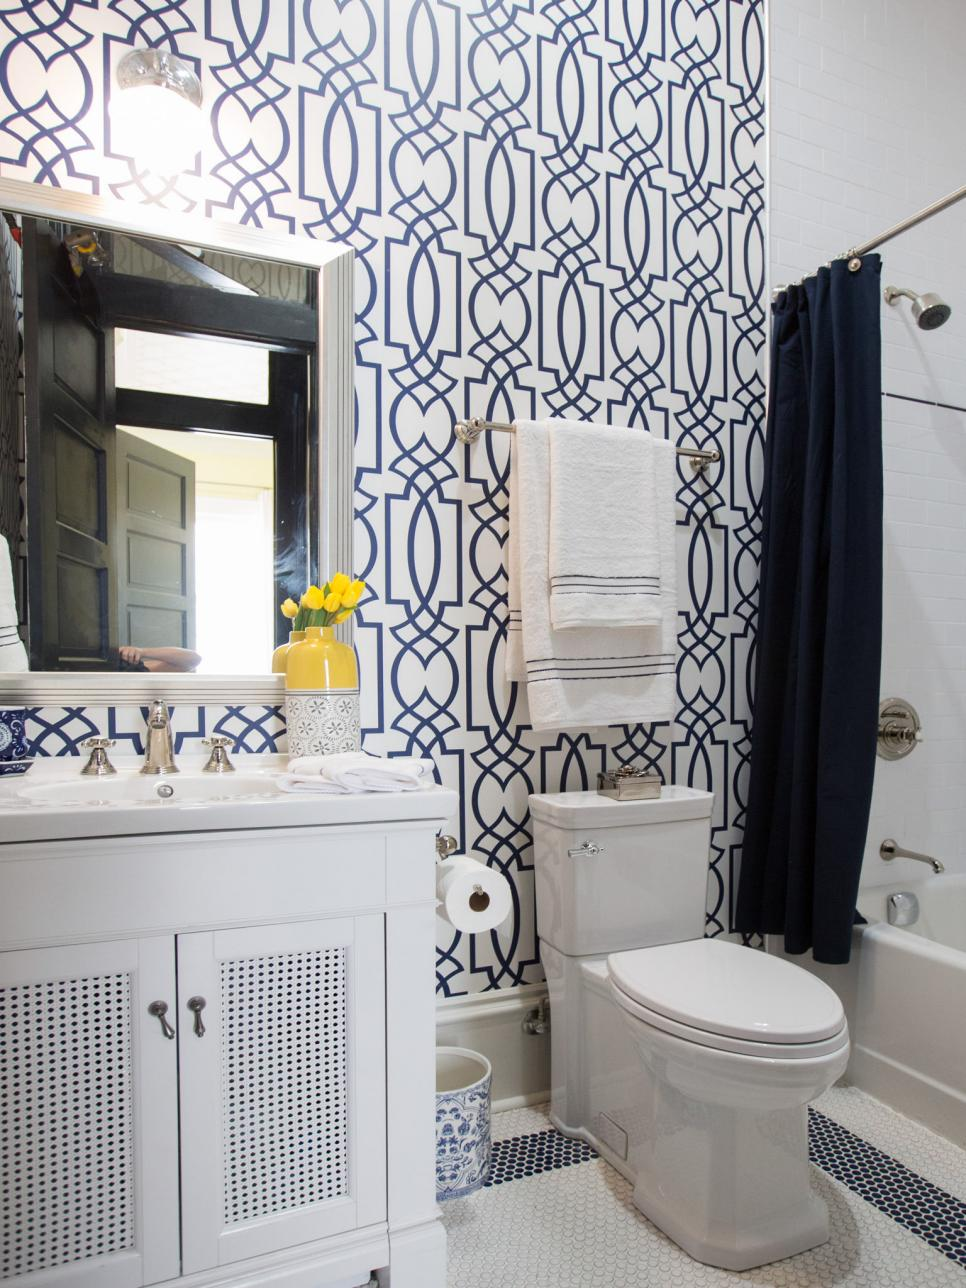 Property Brothers New Orleans pictures of renovated bathroom